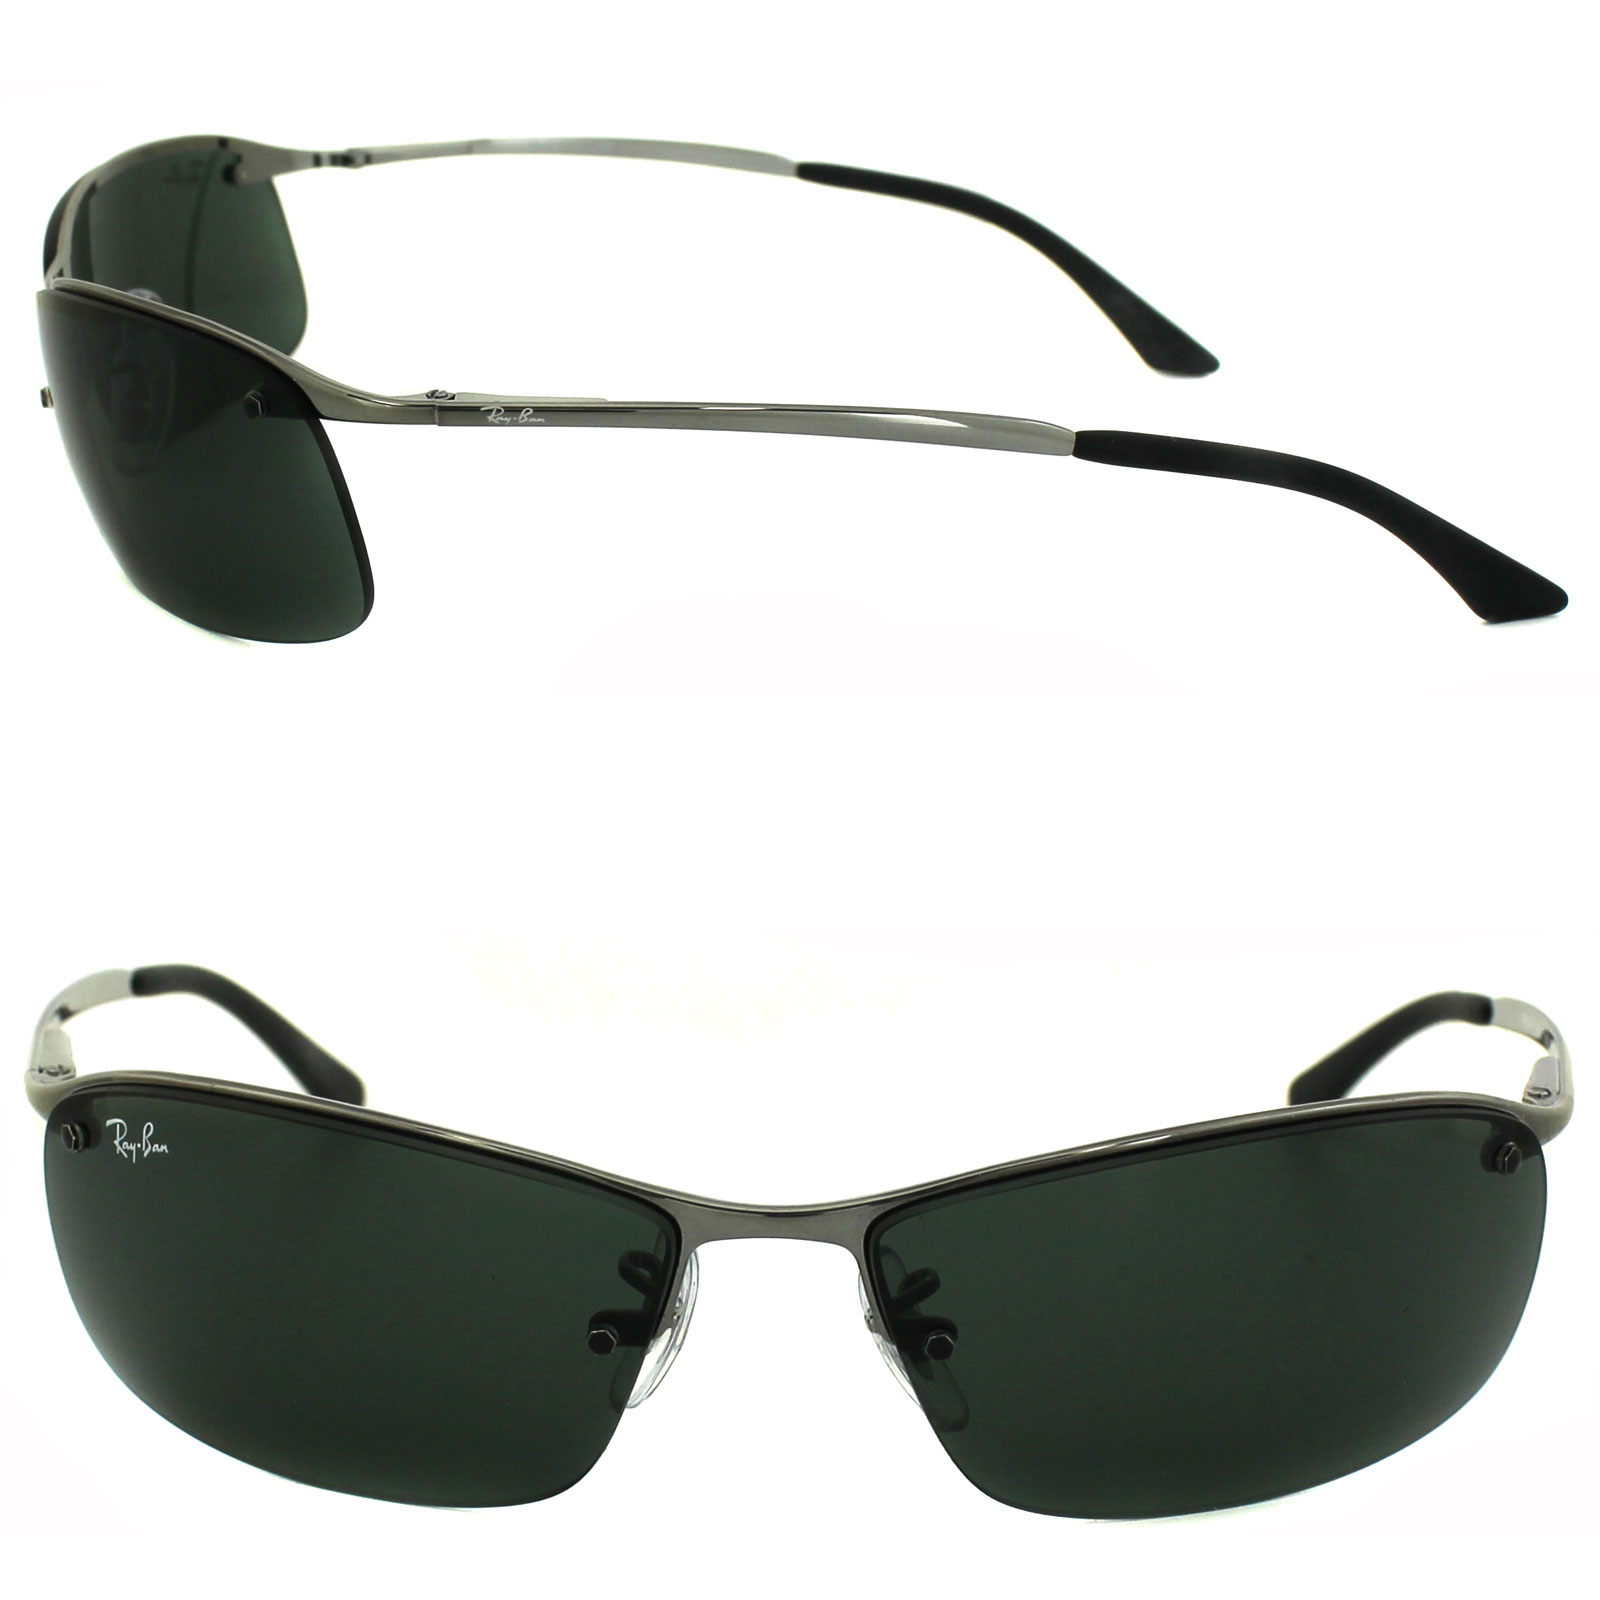 ray ban top bar sunglasses